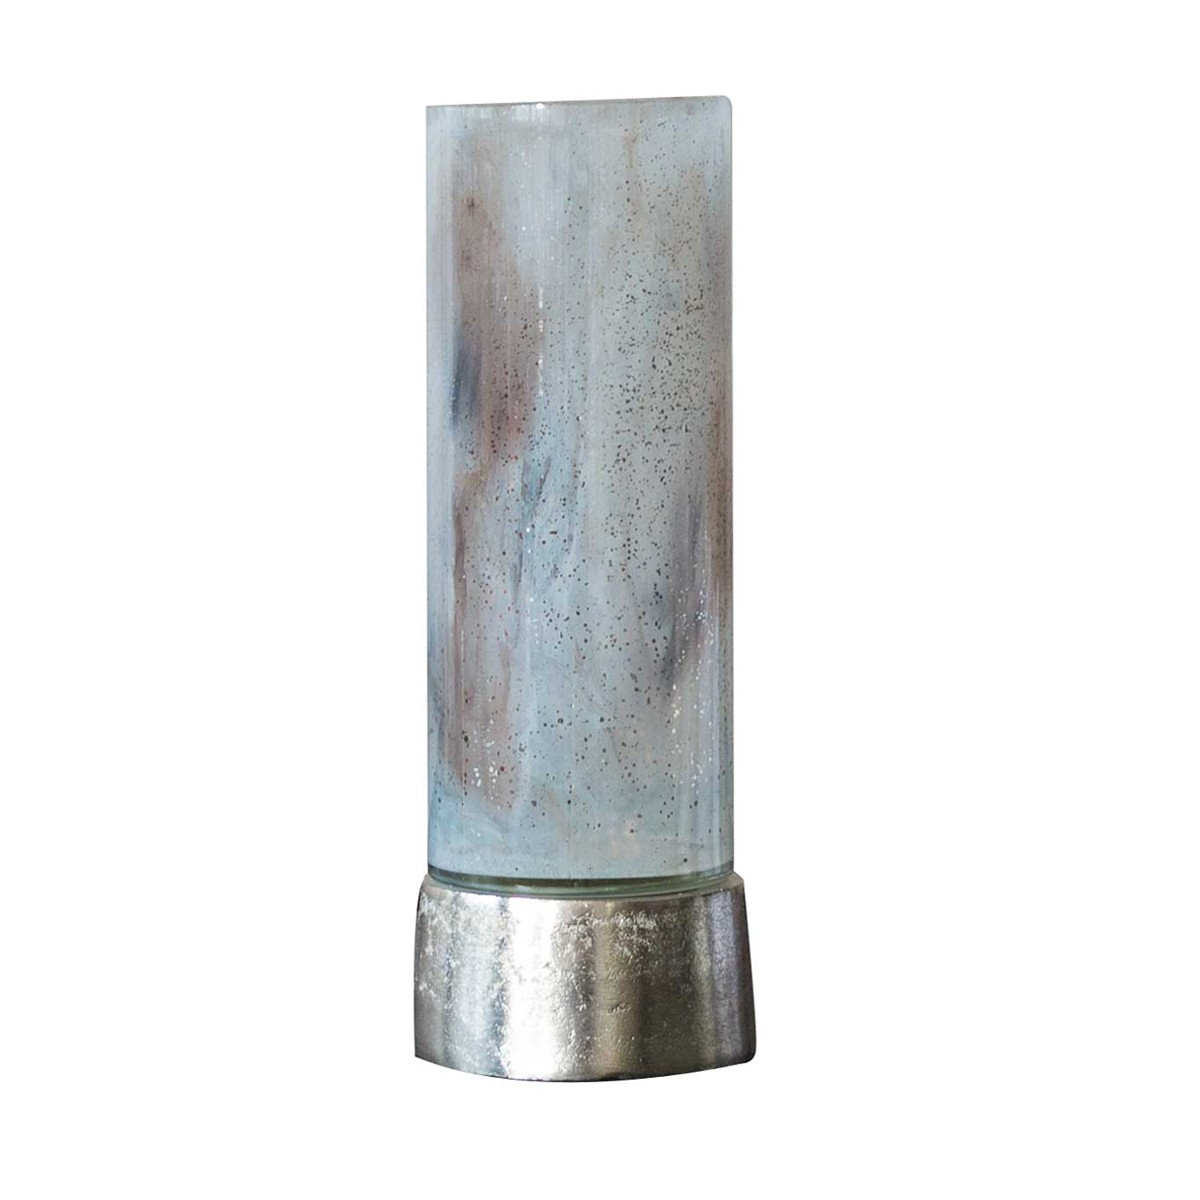 Theo - Candle Holder Aluminium and Glass